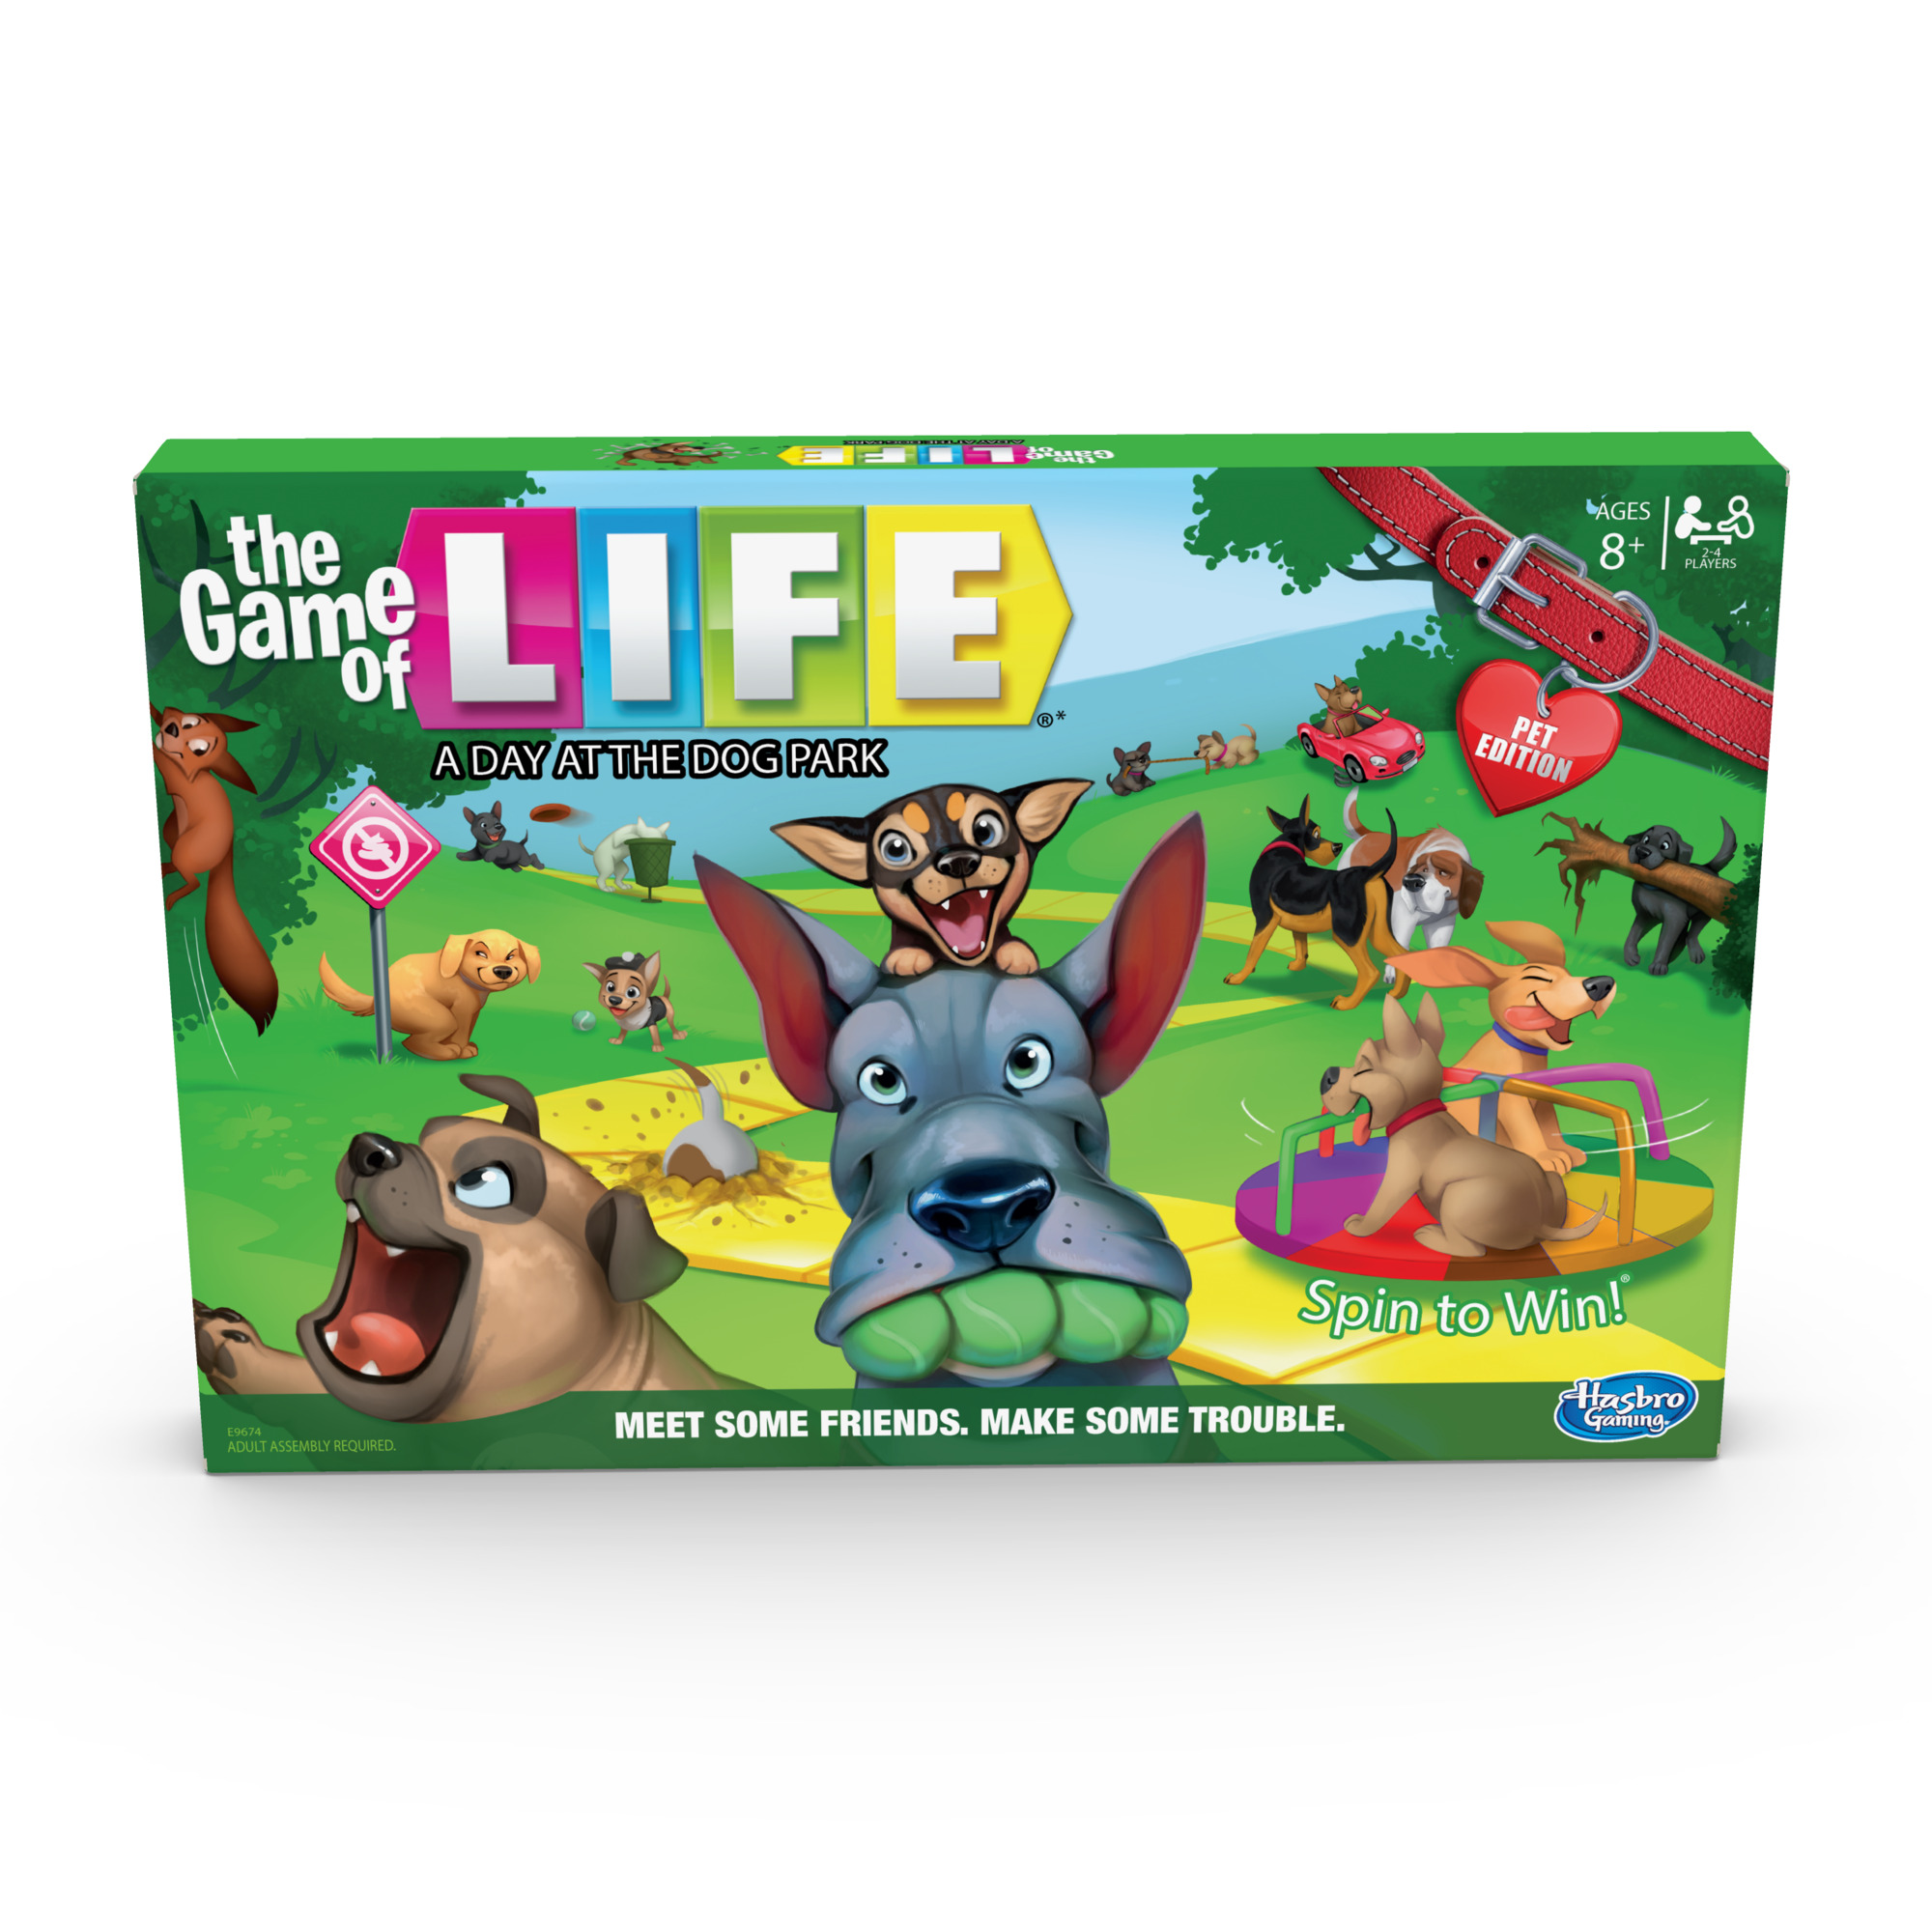 Only At Walmart: The Game of Life: A Day at the Dog Park Board Game